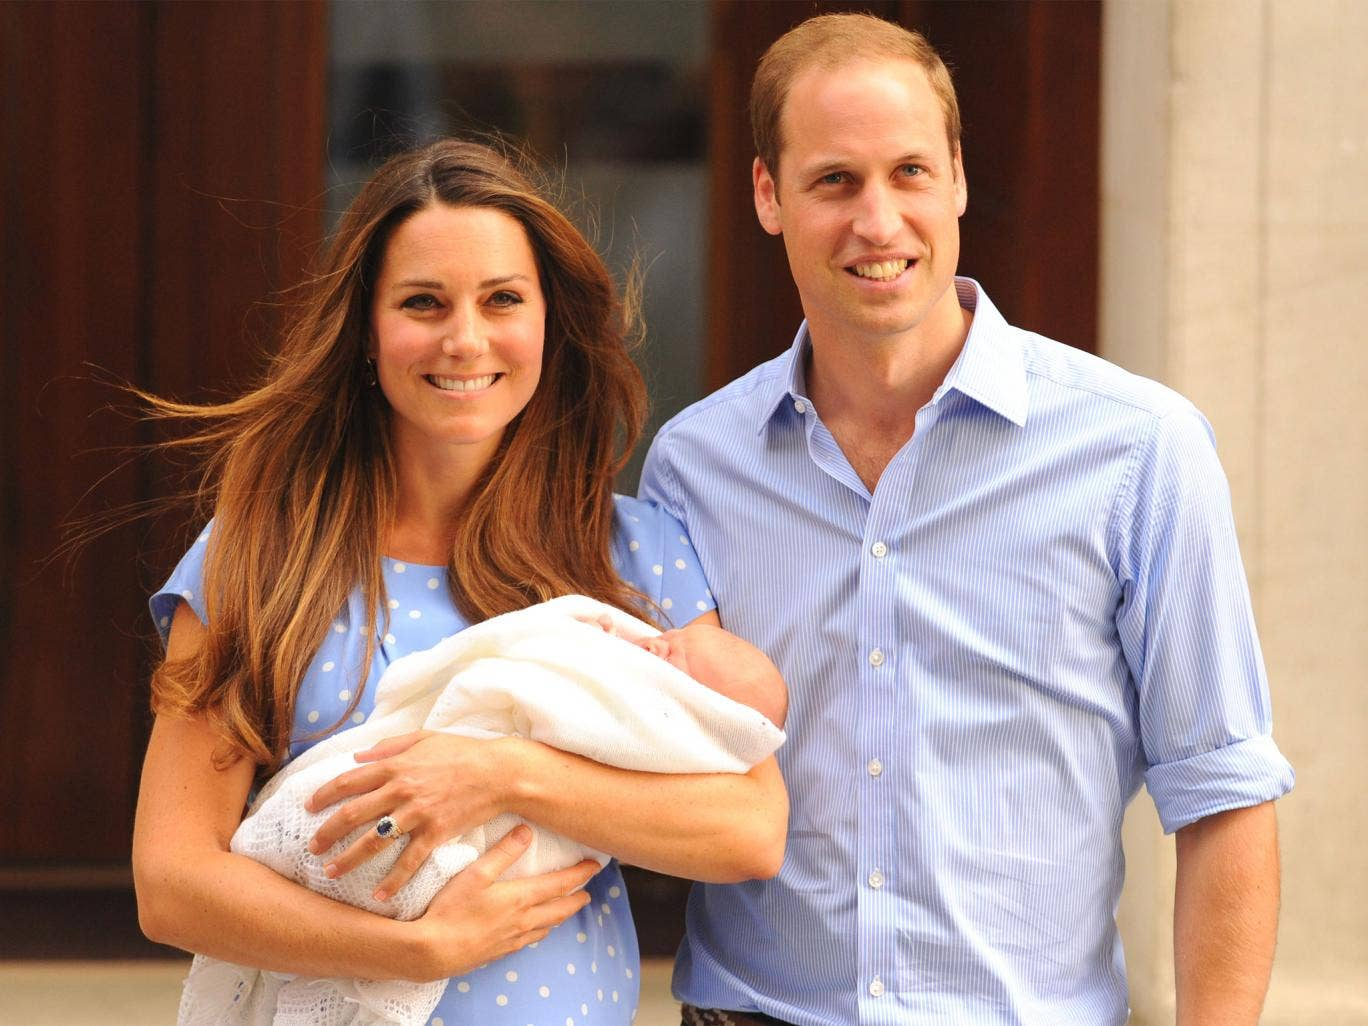 Royal assent: 'Hello!' got the green light for its planned publication of pictures of the royals